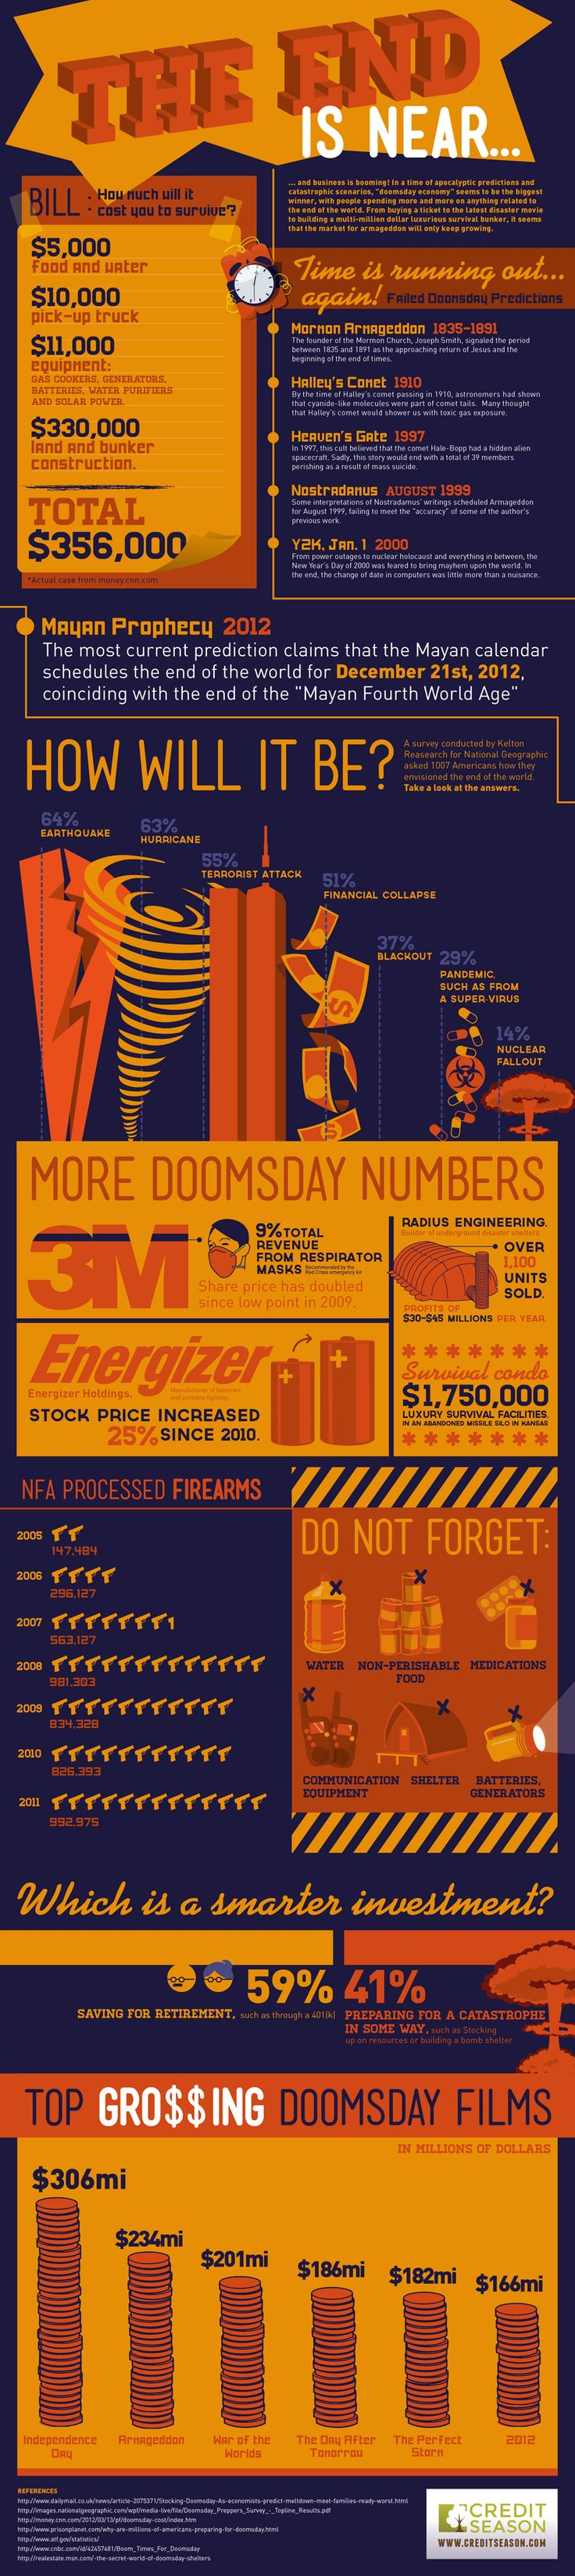 Doomsday Economy: The End Is Near!